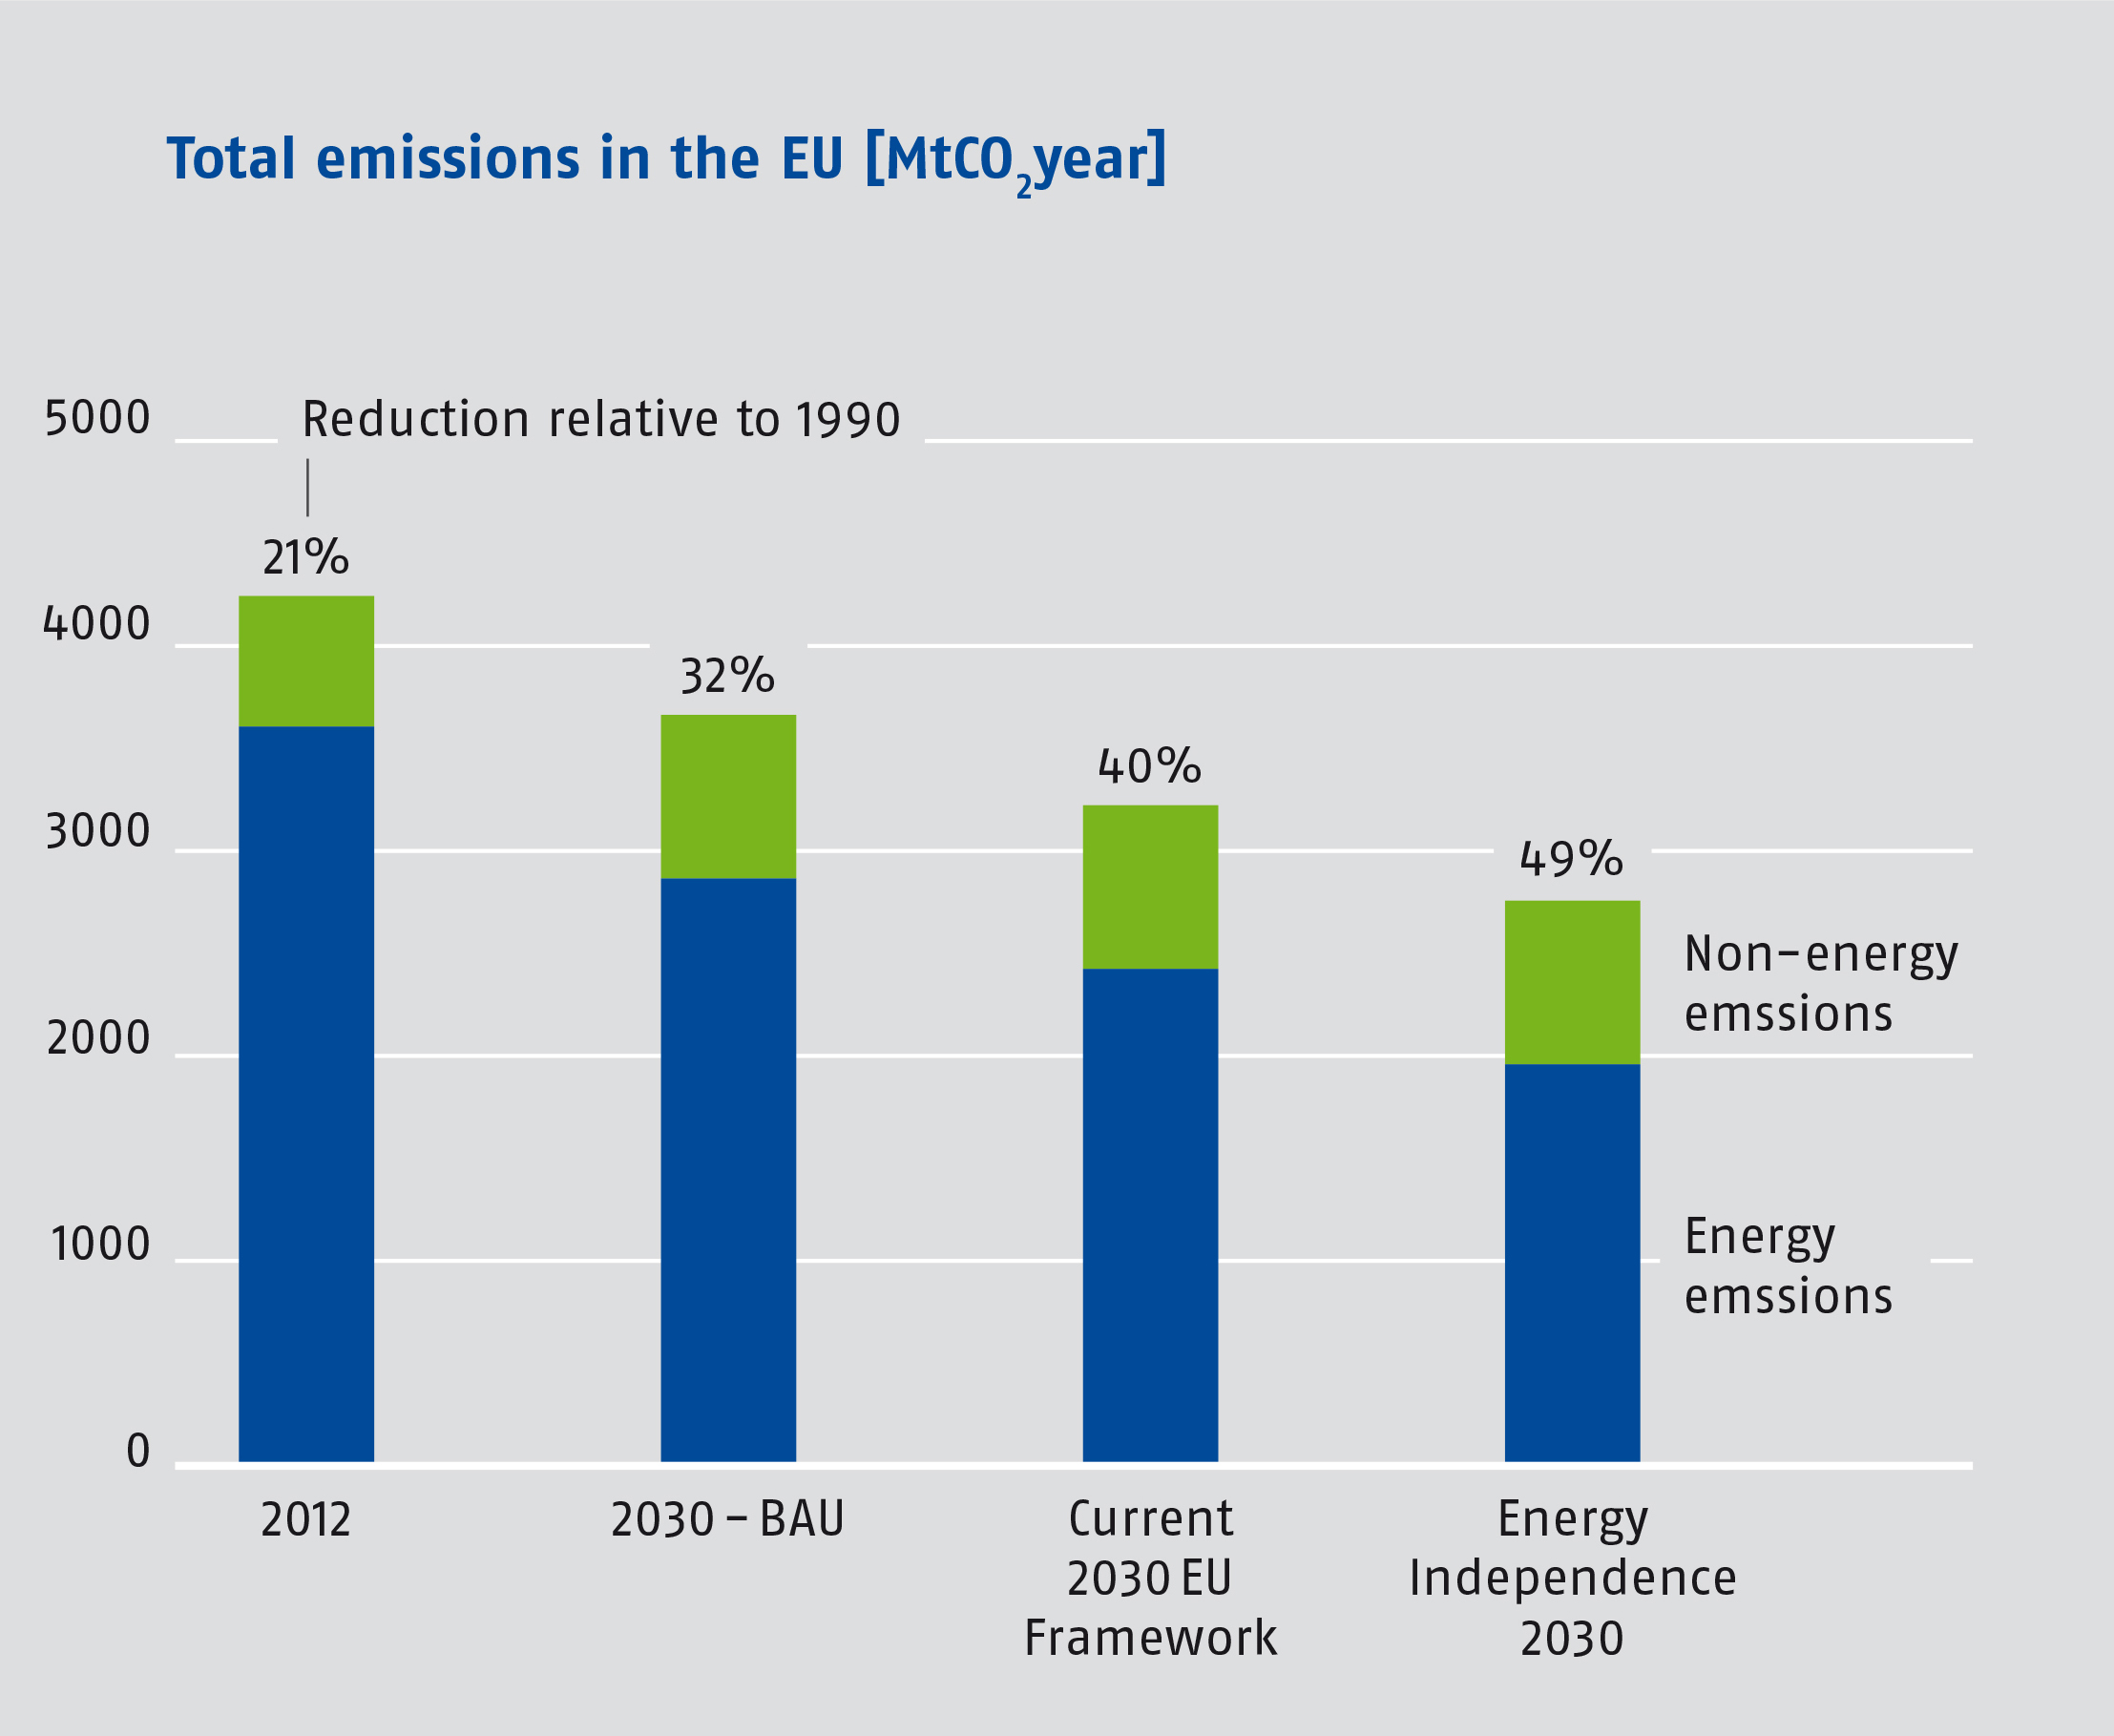 "<p>Notes and Sources: Totals include emissions from land use, land-use change, and forestry. Data/scenarios presented include: Total emissions in 2012 (EEA, 2014); the European Commission's PRIMES scenario (""2030-BAU""; Eurostat 2014); the EU 2030 Framework for Climate and Energy Policies scenario (""Current 2030 EU Framework""; European Commission, 2014) and this study's scenario (""Energy Independence 2030""; Ecofys, 2014).</p>"